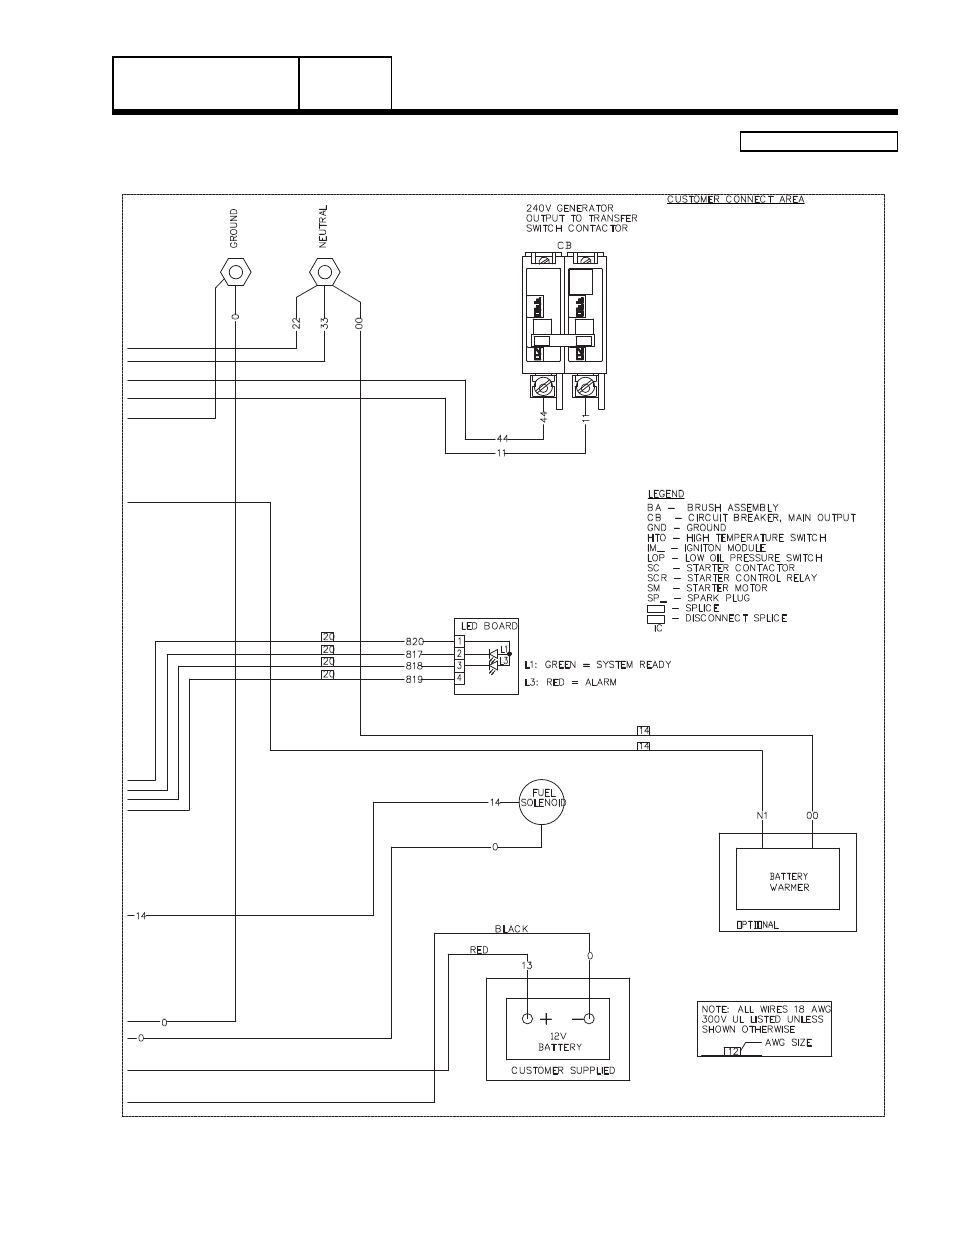 8 Kw Generac Wiring Diagram Diagrams Automatic Backup Generator Transfer Switch Group G 14 Home Standby Part 7 Page Manuals Switches